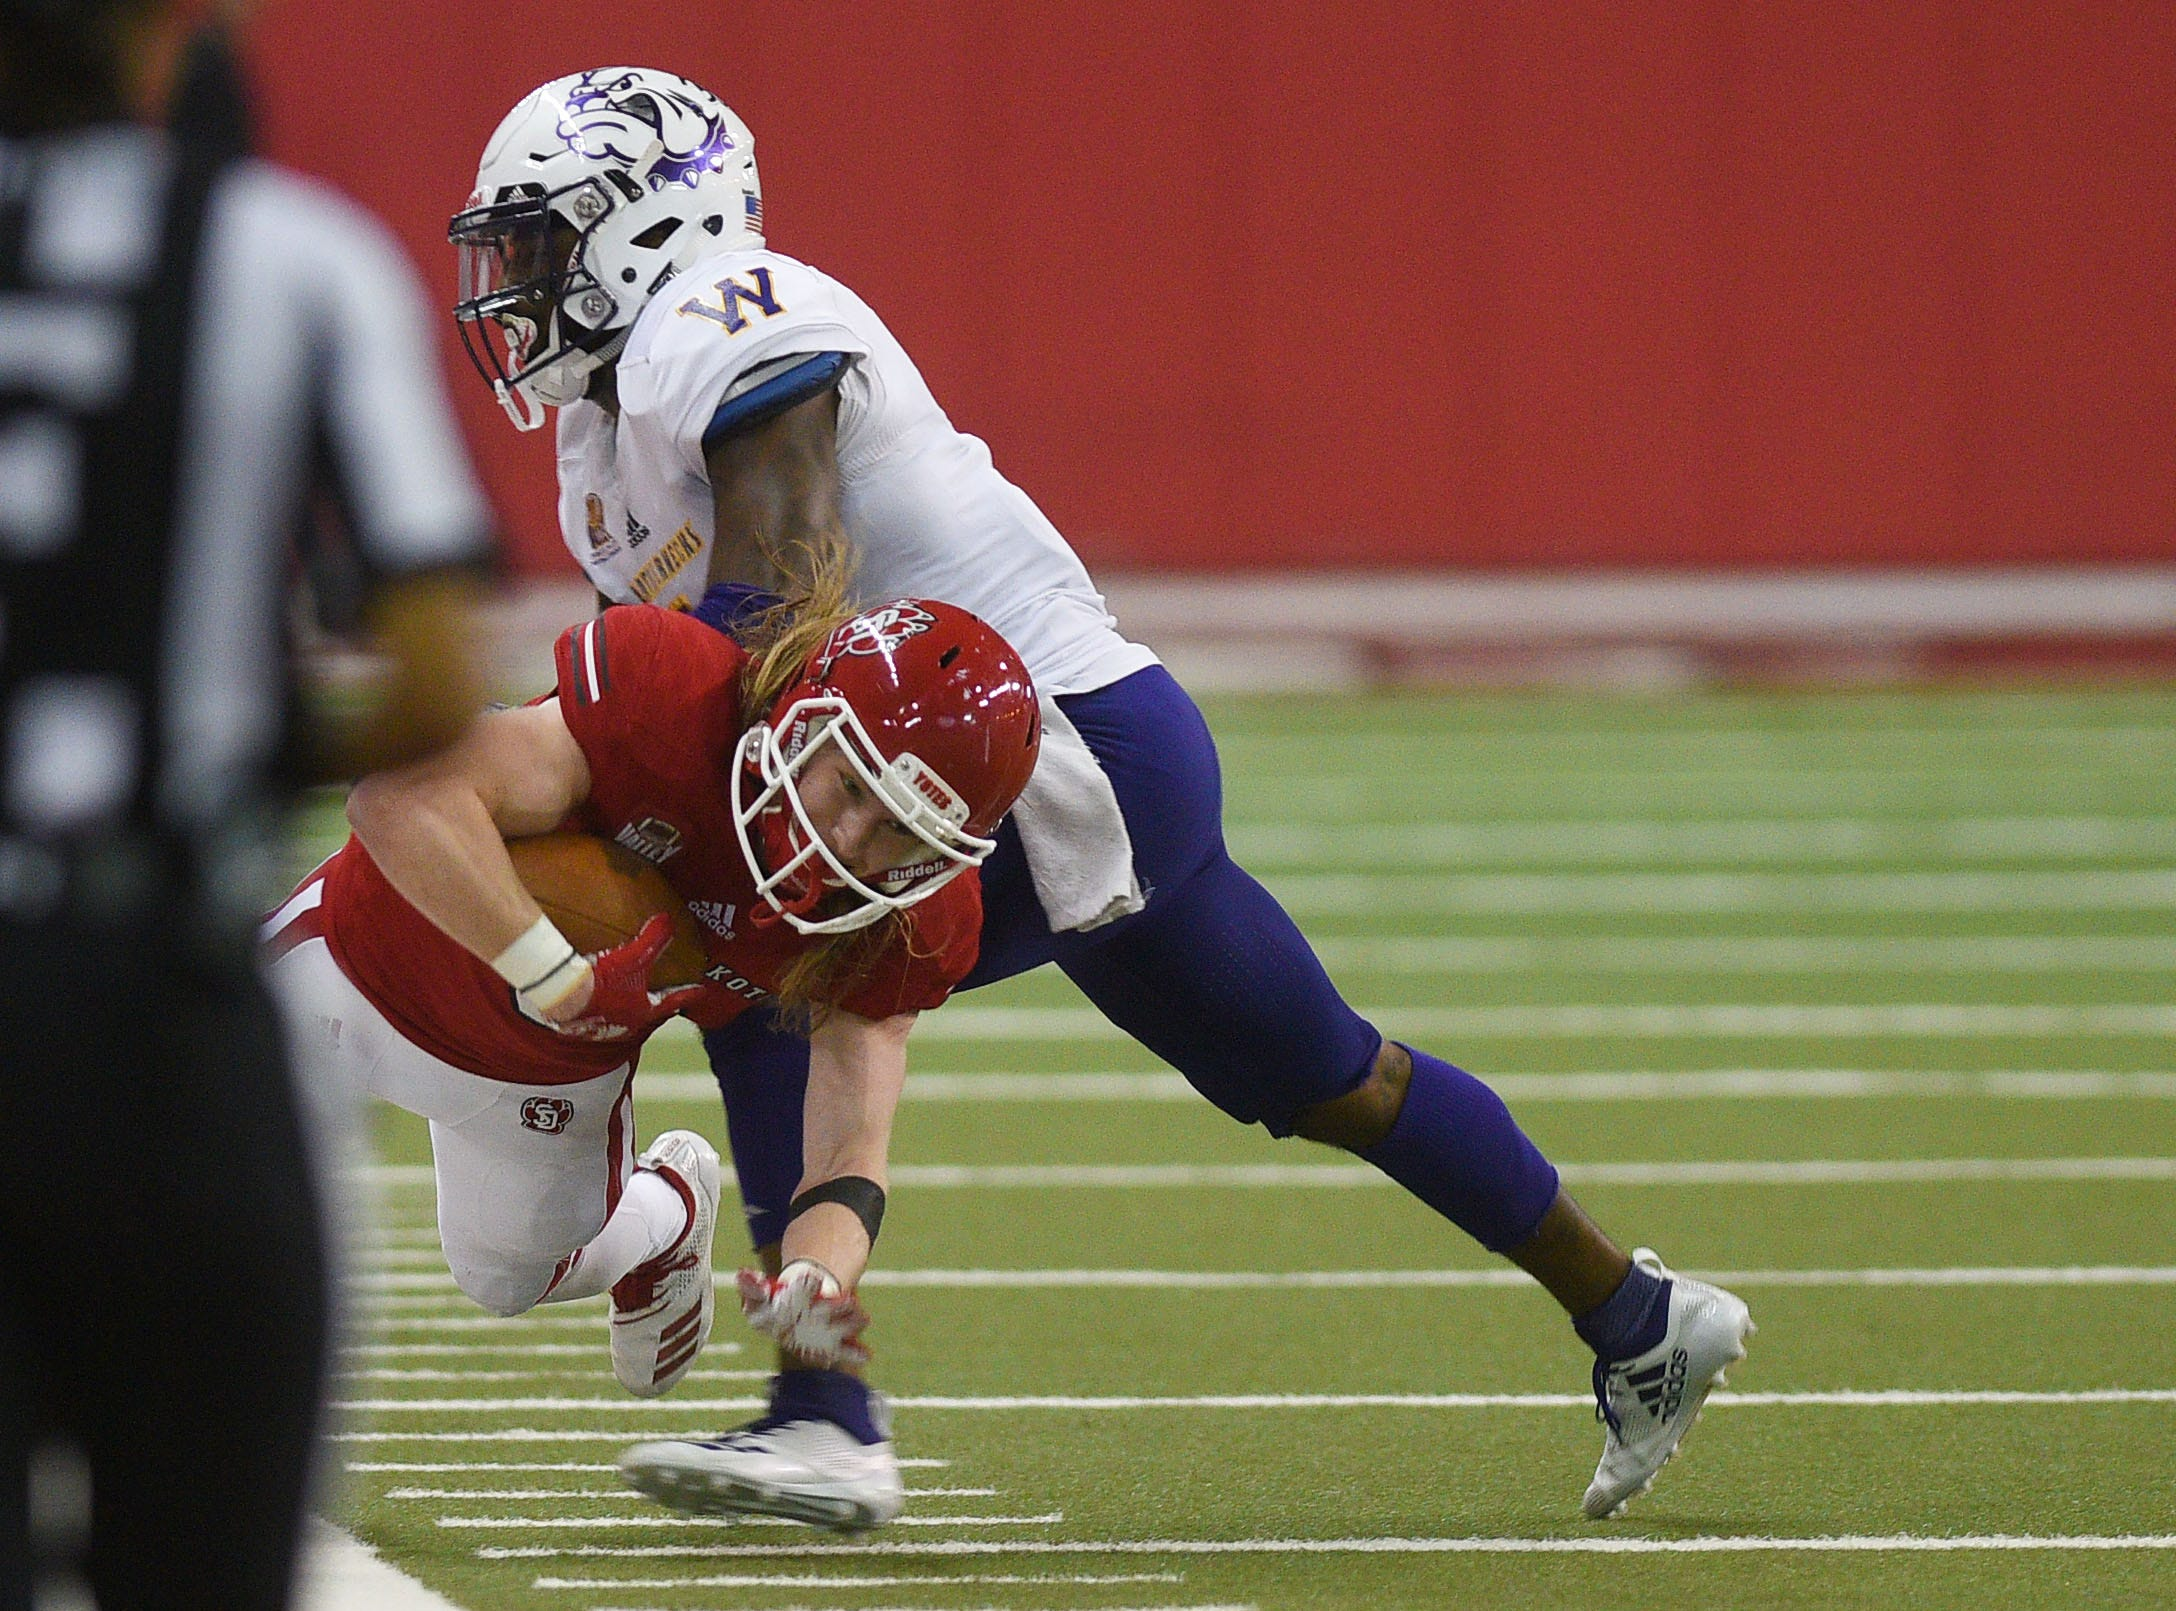 USD's Kody Case attempts to stay inbounds during the game against Western Illinois Saturday, Nov. 10, at the DakotaDome in Vermillion.